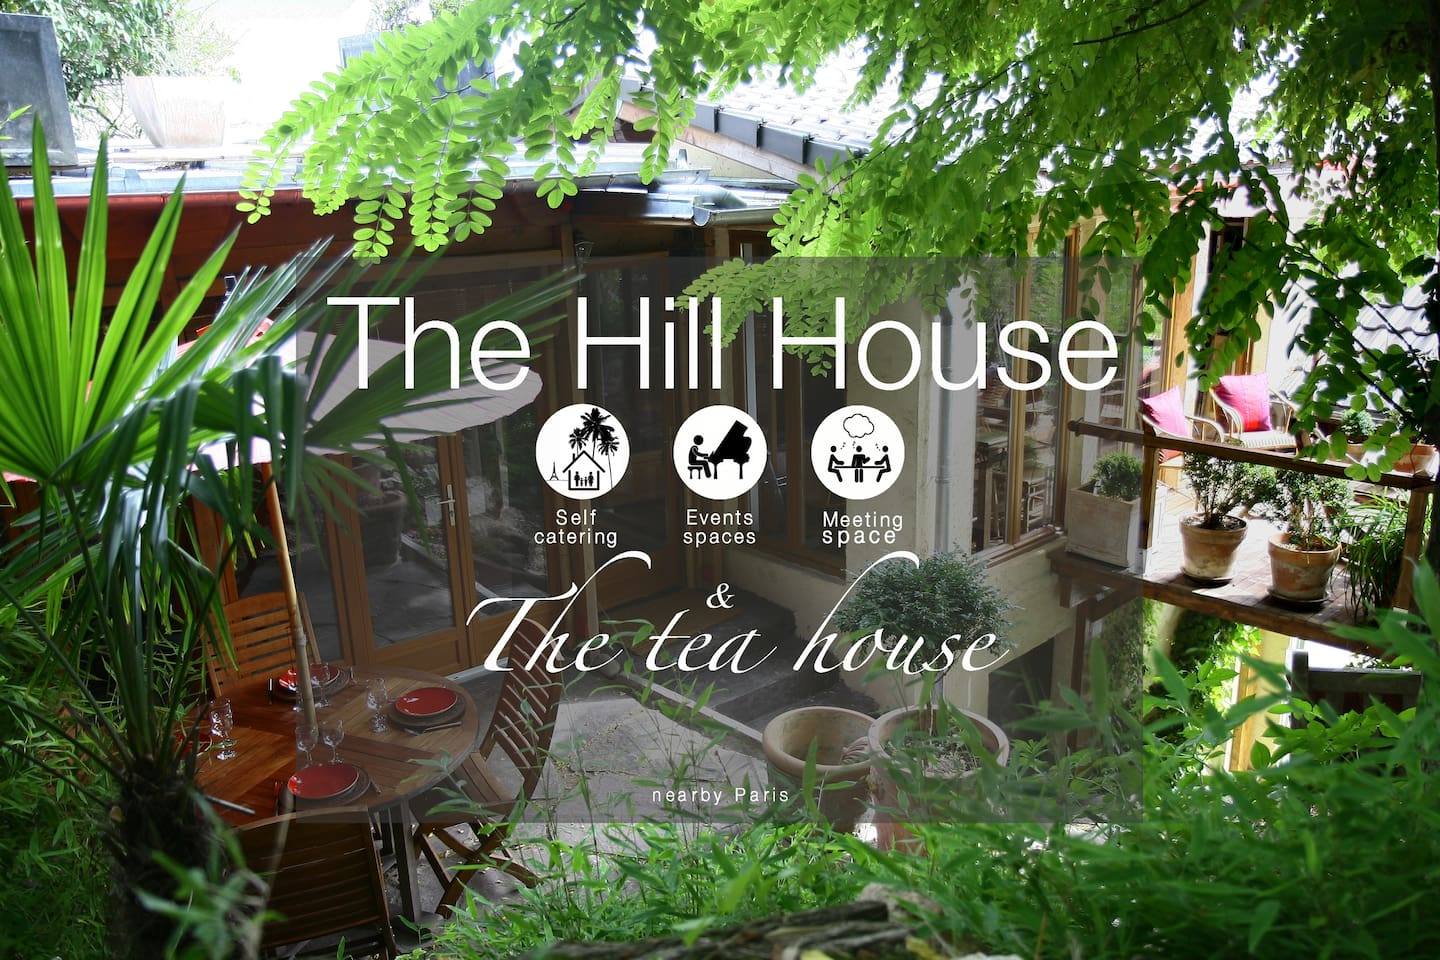 the hill house 130m2 nearby paris houses for rent in la frette